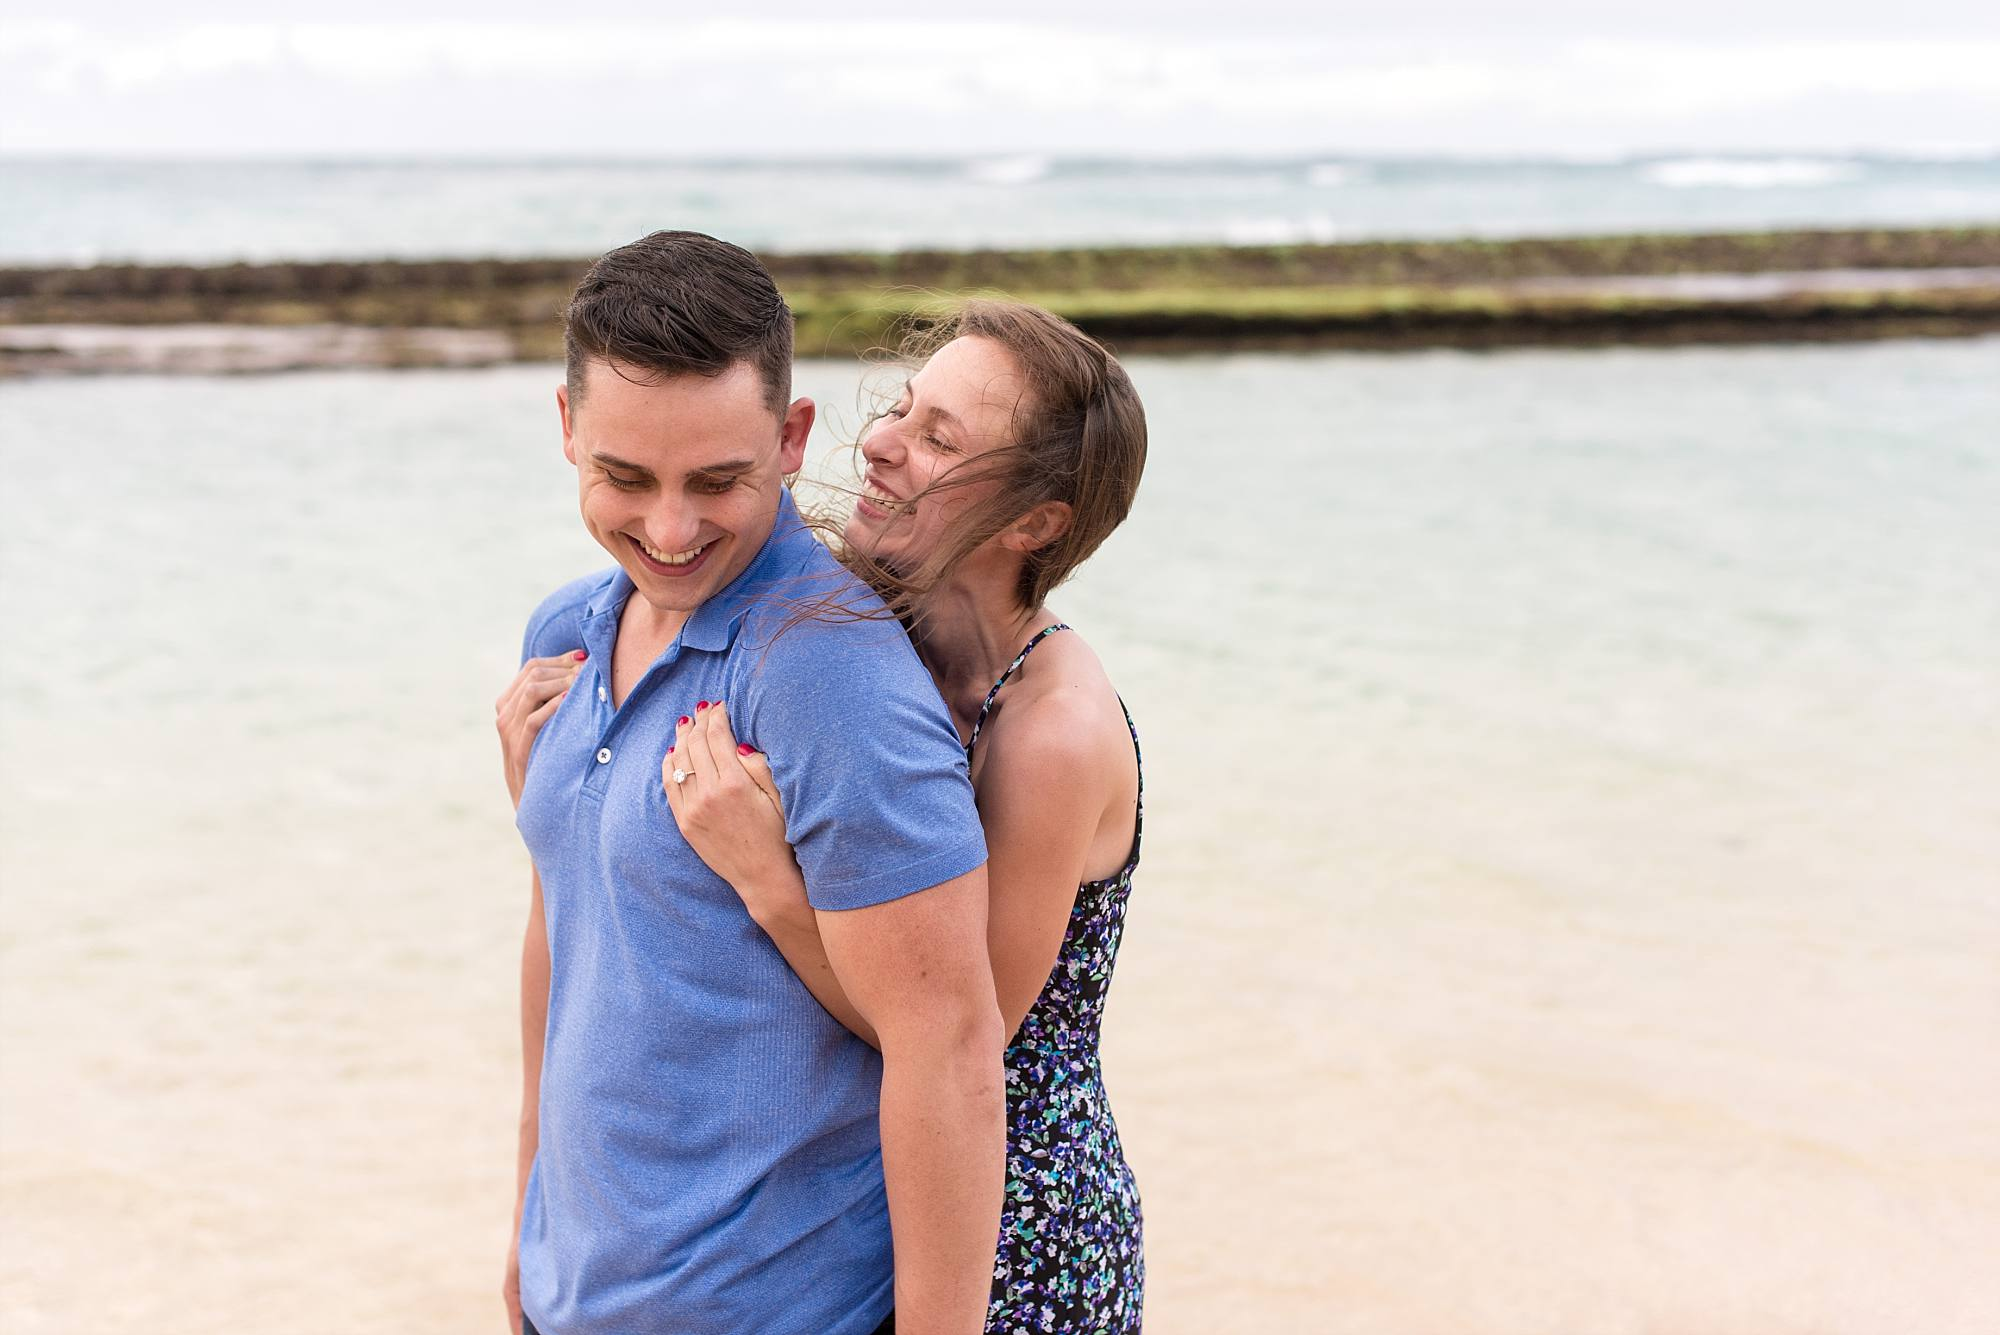 woman wrapping her arms around her man